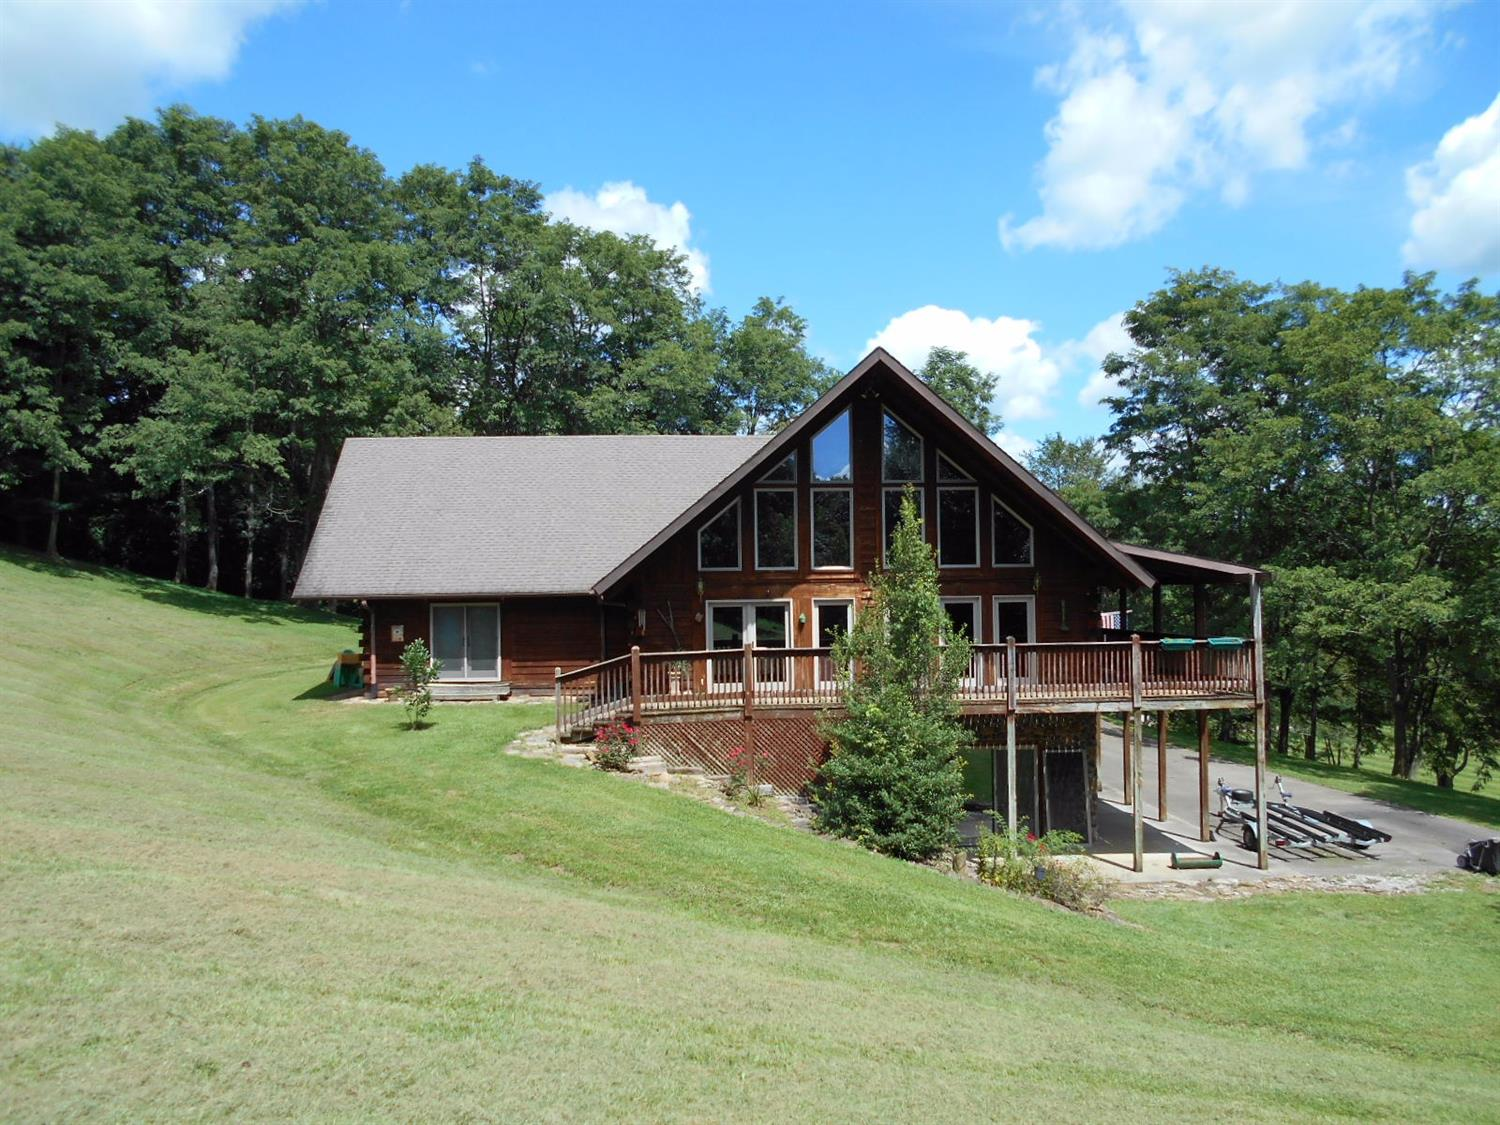 Looking for private country living close to everything? Only 25 miles east of Lexington; 2 miles west of Mt.Sterling on US 60, this 17+acres with a 30x60 metal building has potential for horses, organic farming or other unique interests.   The impressive custom built log home with wrap around covered porch has 4700 sq ft of open living area and a 2680 sq ft partially finished basement with high, 15ft ceilings. Built to be environmentally friendly, the home was engineered with passive solar design and passive geothermal heating and cooling. The spacious kitchen is ready to host family or entertain with custom cherry cabinets, two sinks, and large island with seating for 8.  The Master suite, located on the main floor, has two exterior exits and an en-suite bathroom with large custom tiled shower. The large 2048 sq ft upstairs loft opens onto large deck. This home also boasts a 2 car garage in the lower level and a 2 car carport on the main living level providing both access and storage,